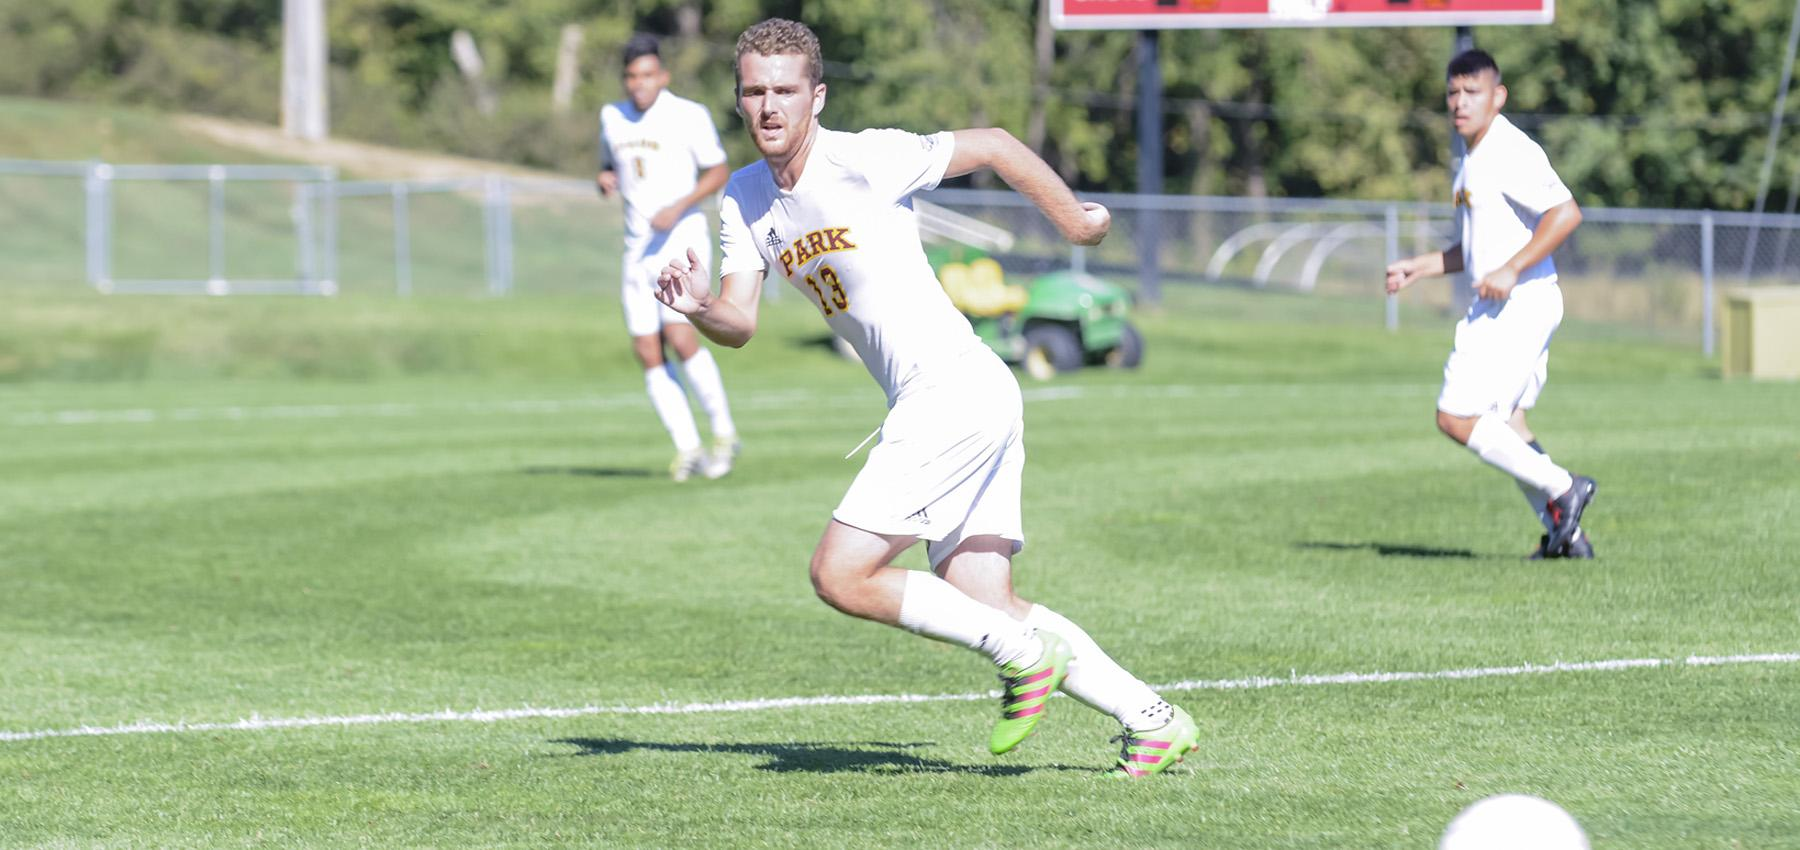 Men's Soccer Notebook: Ranked Foe Awaits Pirates